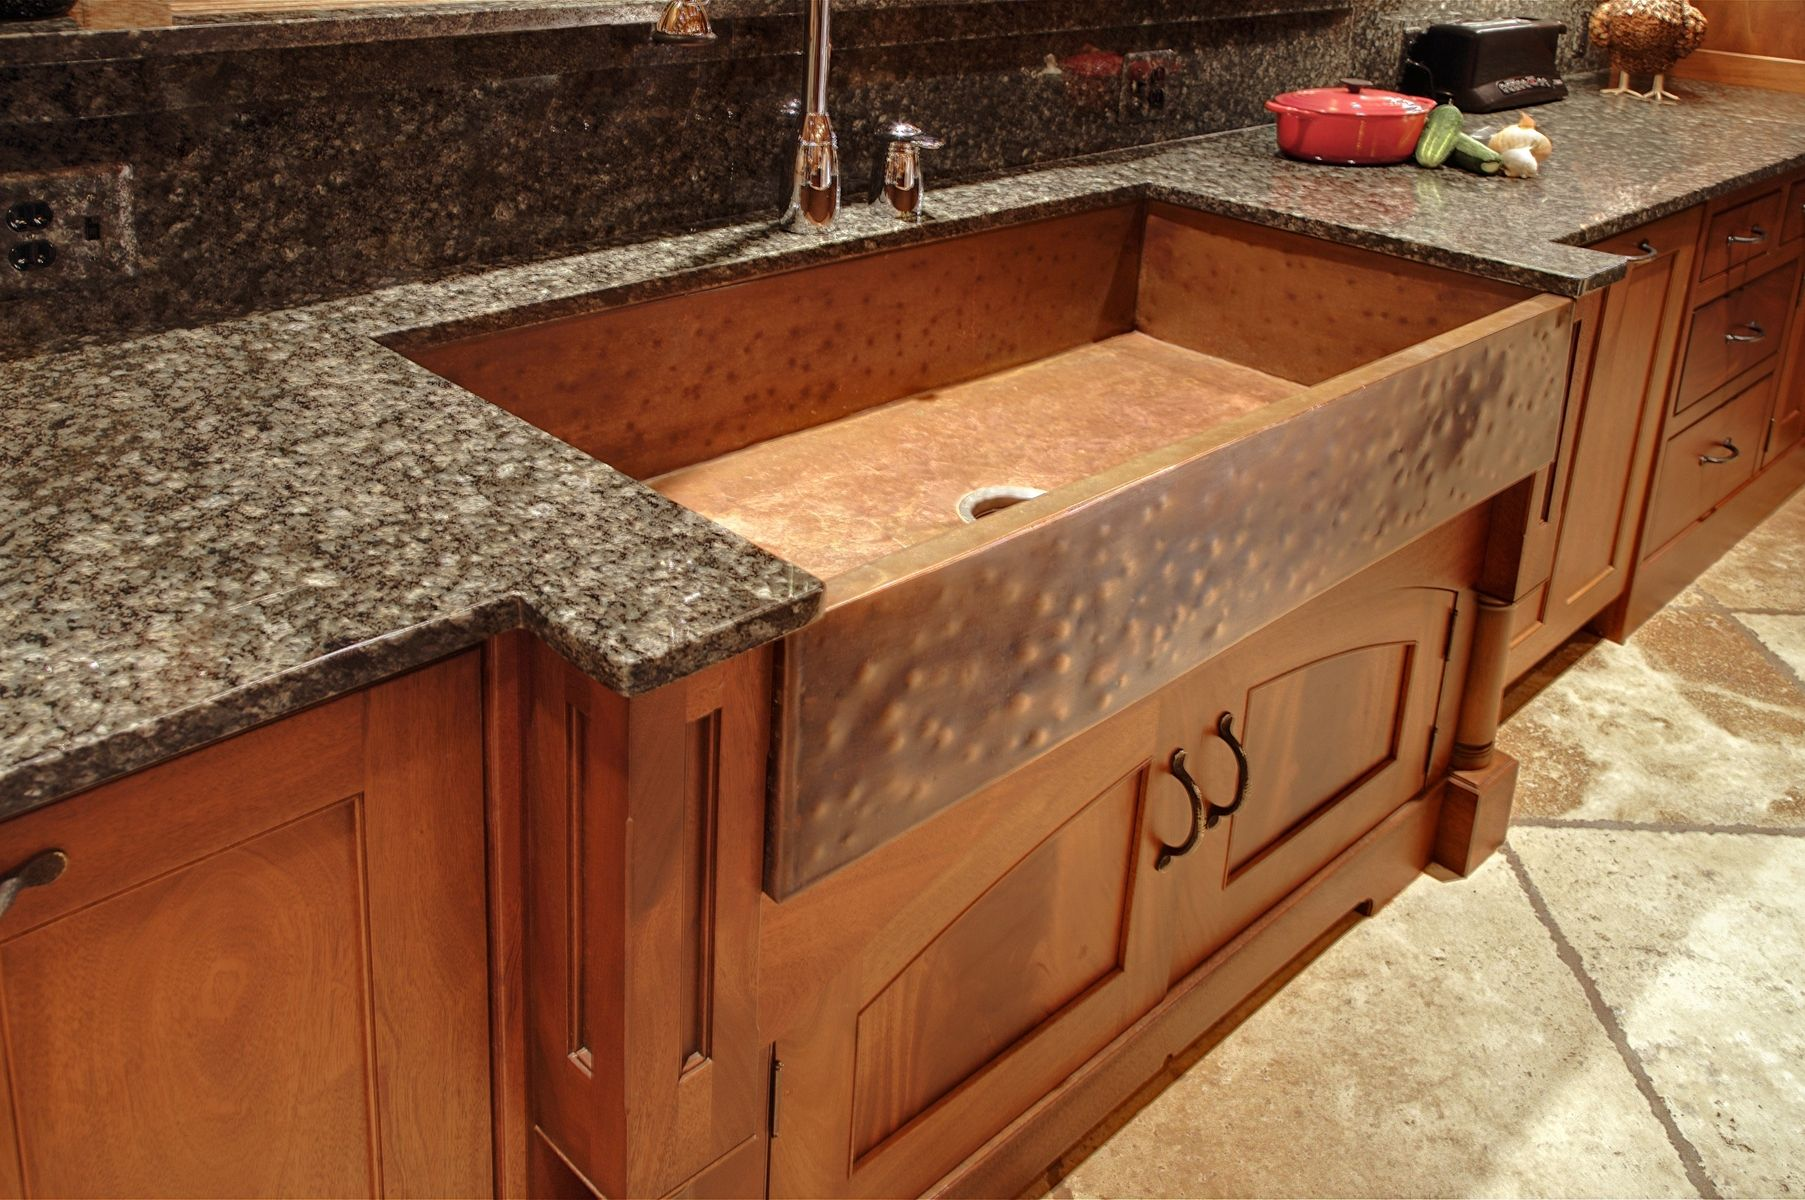 Mcnabb Farm Style Copper Sink Custommade By Darin Fetter